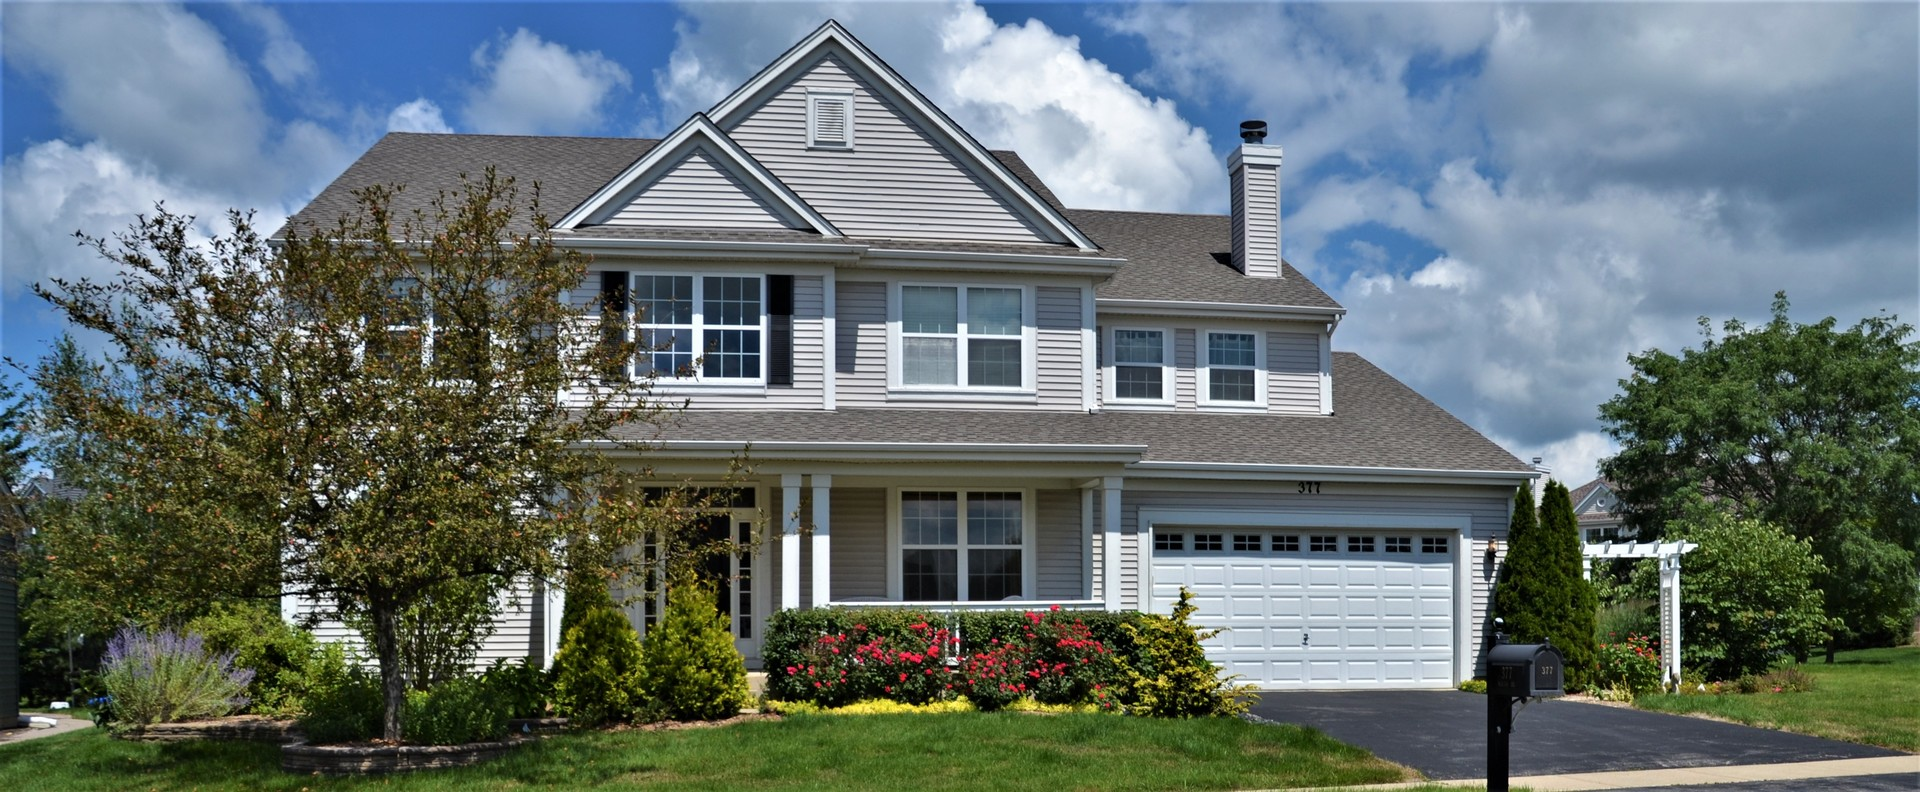 377 Merion Drive, Cary, Illinois